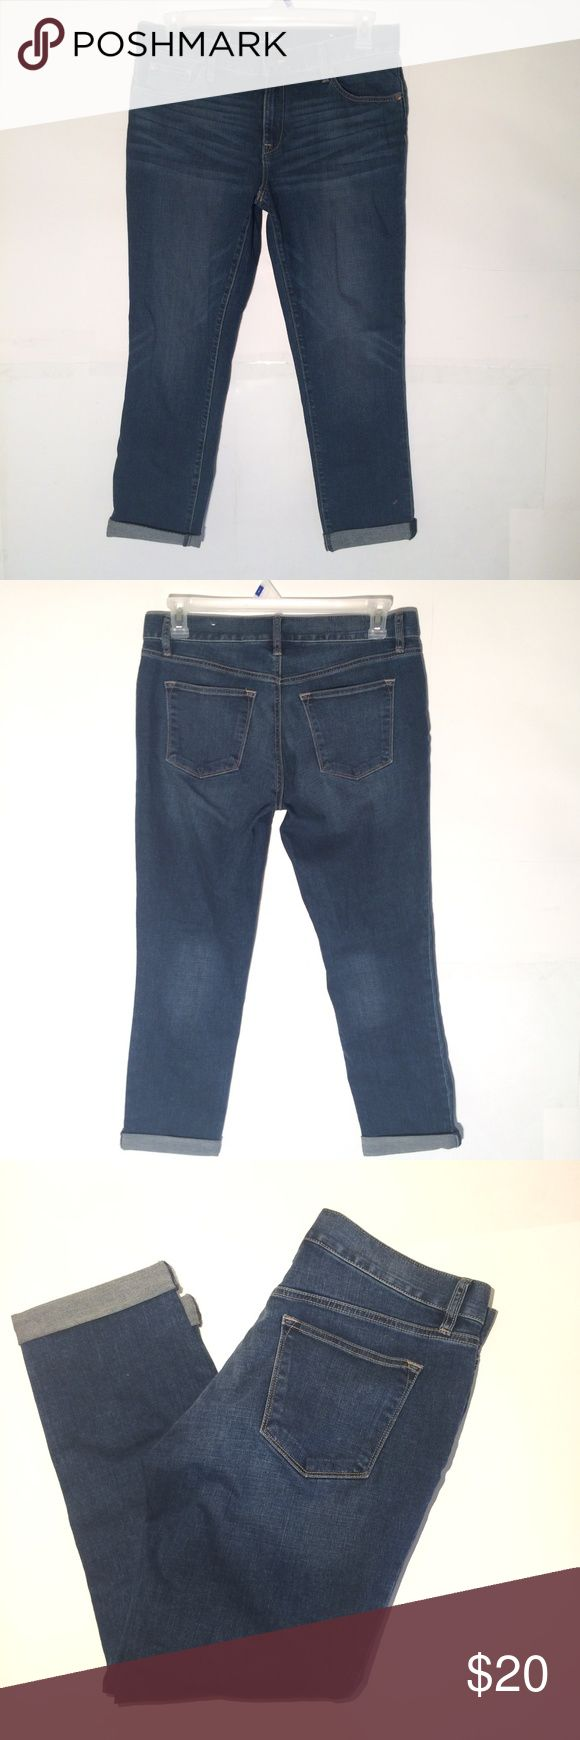 "Ann Taylor Loft SLIM BOYFRIEND Jeans size 6 Ann Taylor Loft SLIM BOYFRIEND stretch jeans. Ladies tagged size 6. Medium wash. Excellent condition. No rips stains or tears. Can be worn cuffed or straight. See measurements below. 98% cotton and 2% spandex. Actual measurements are:  Waist 34""  Inseam 27"" rolled /29"" straight.   Rise 9.5""  Leg openings 14""  Thanks! LOFT Jeans Boyfriend"